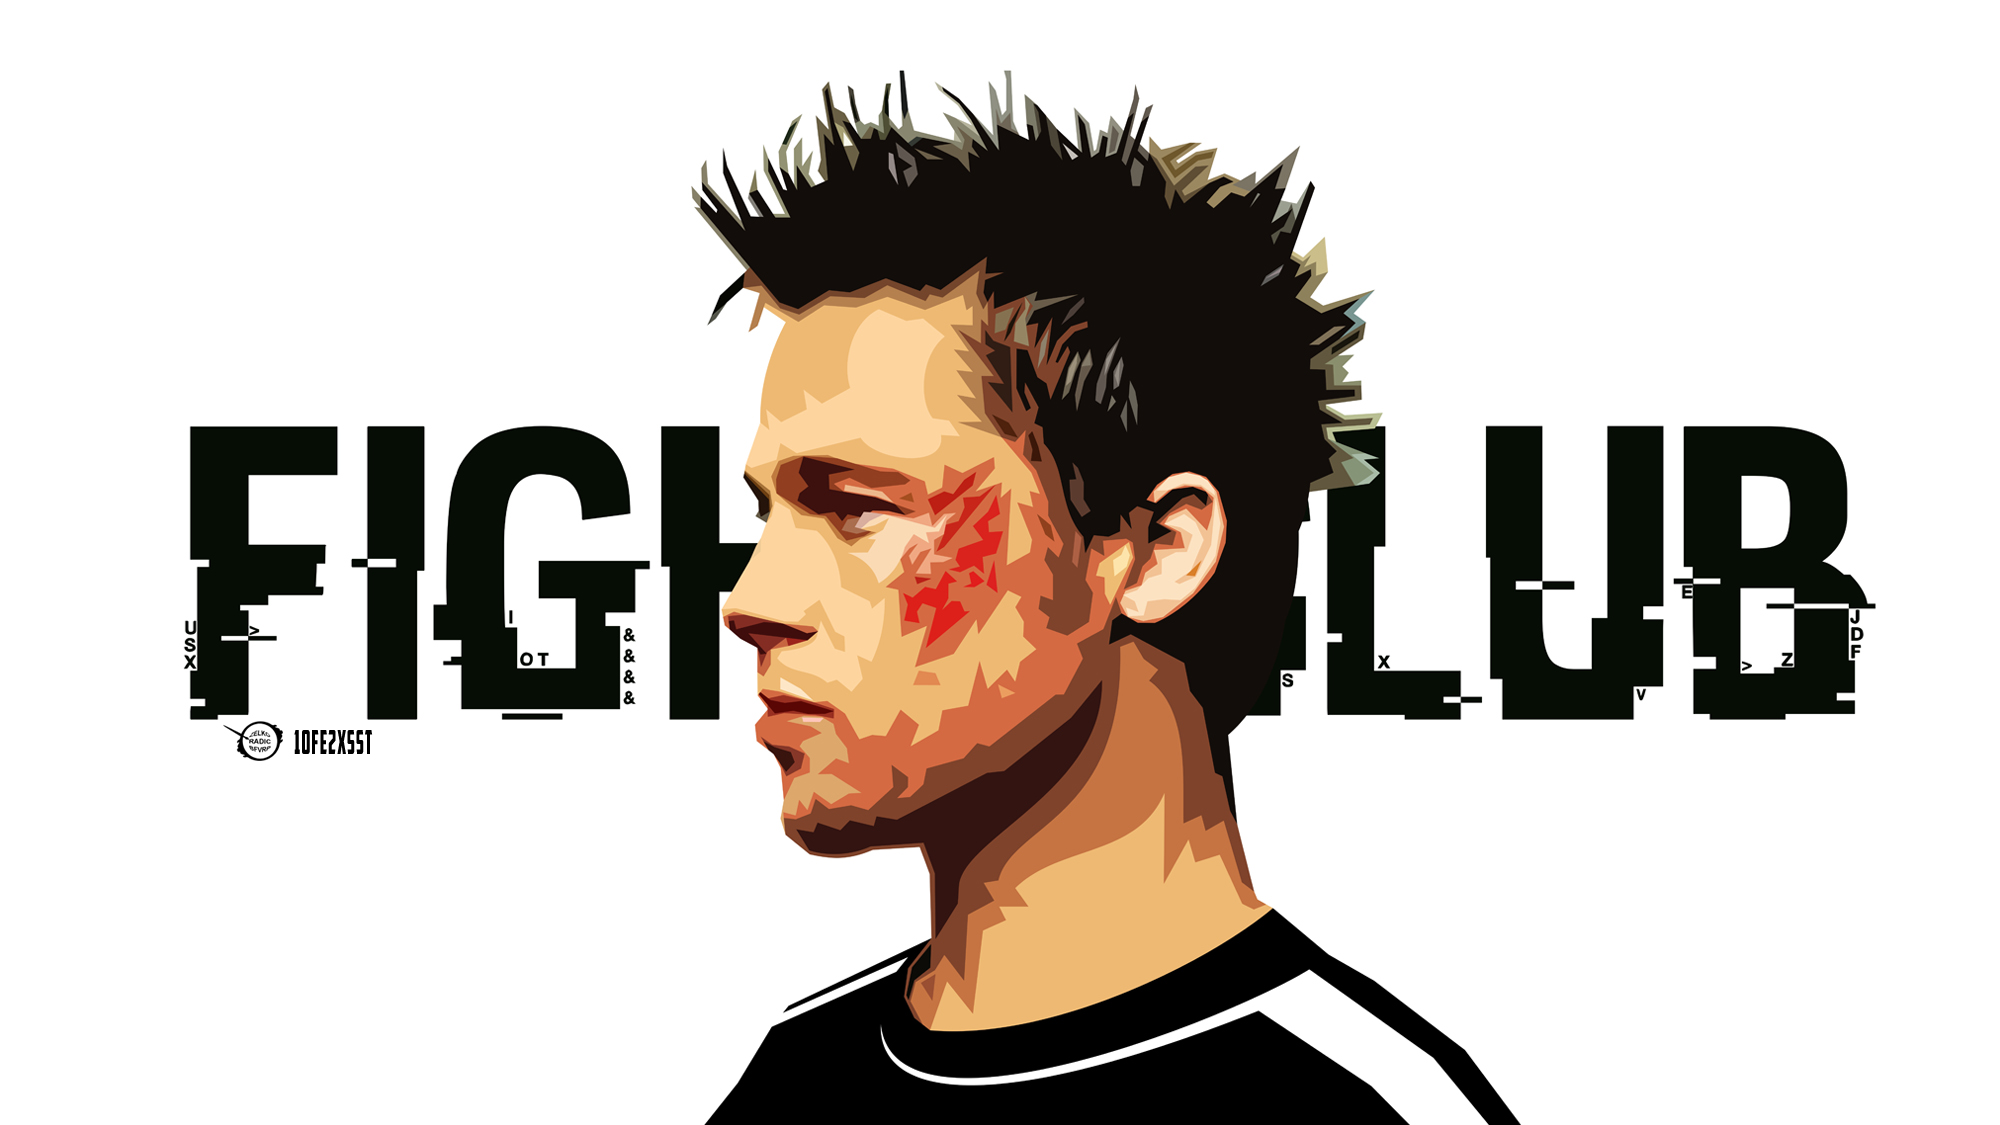 Tyler Durden Iphone Wallpaper Fight Club Wallpapers Pictures Images